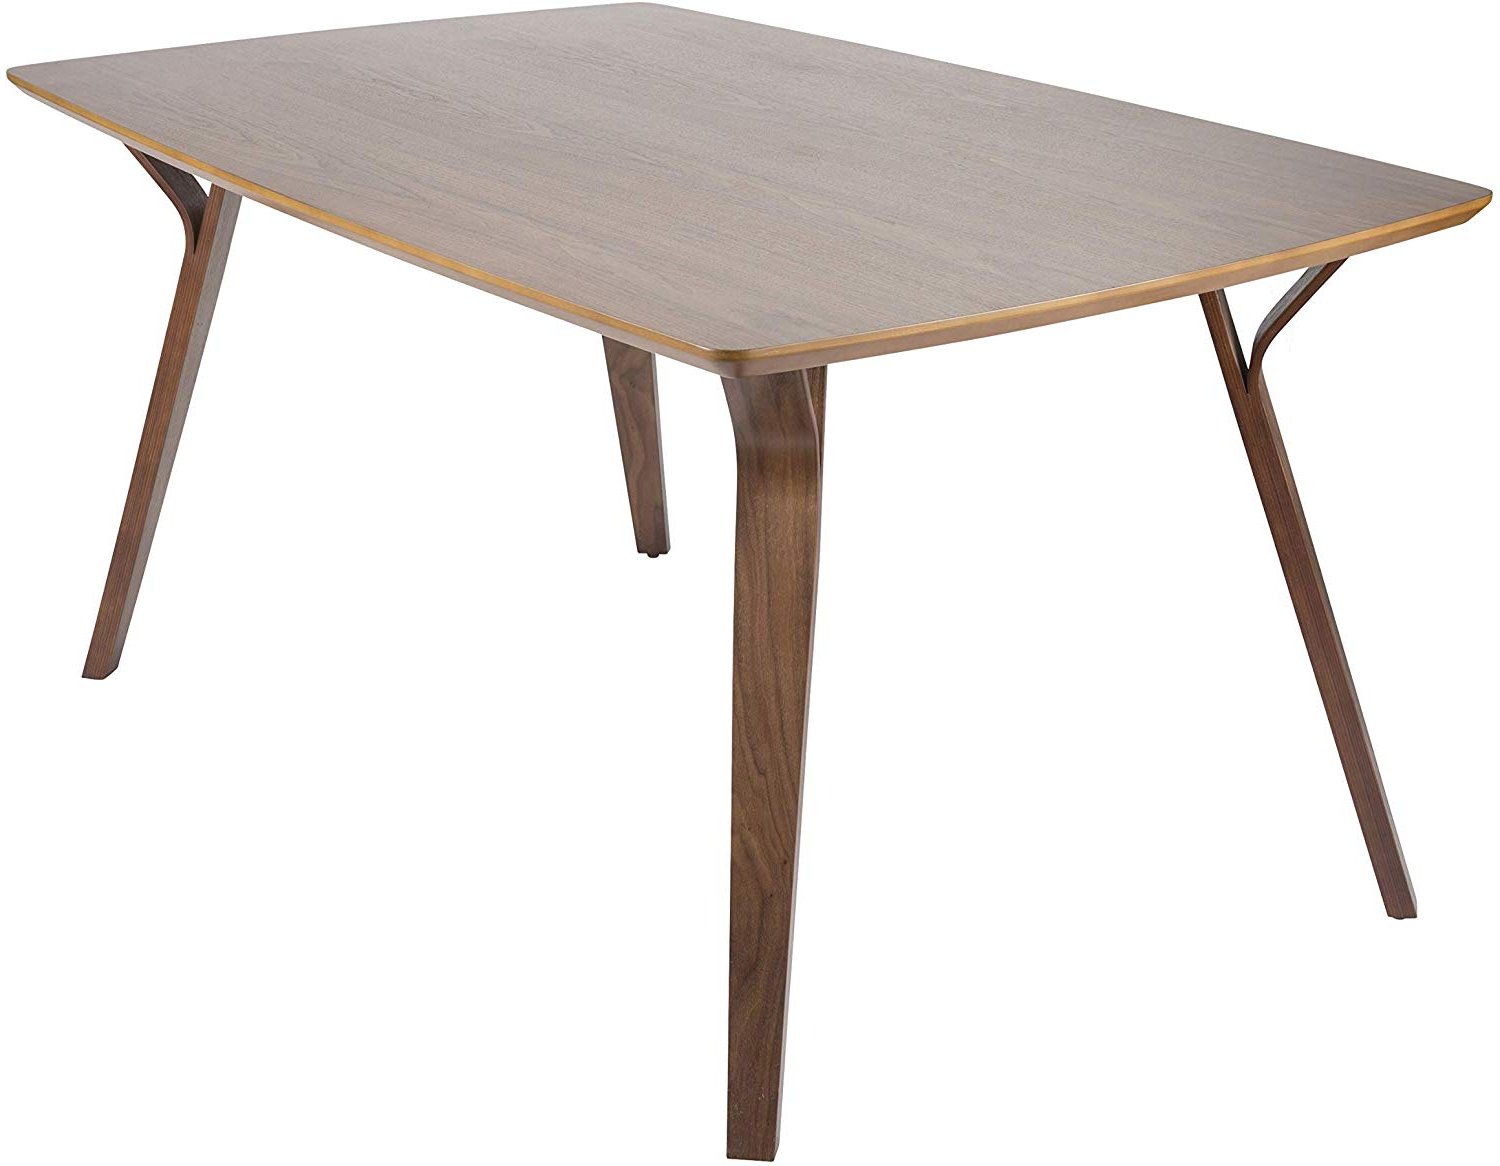 Recent Mid Century Rectangular Top Dining Tables With Wood Legs inside Amazon - Lumisource Mid-Century Modern Dining Table In